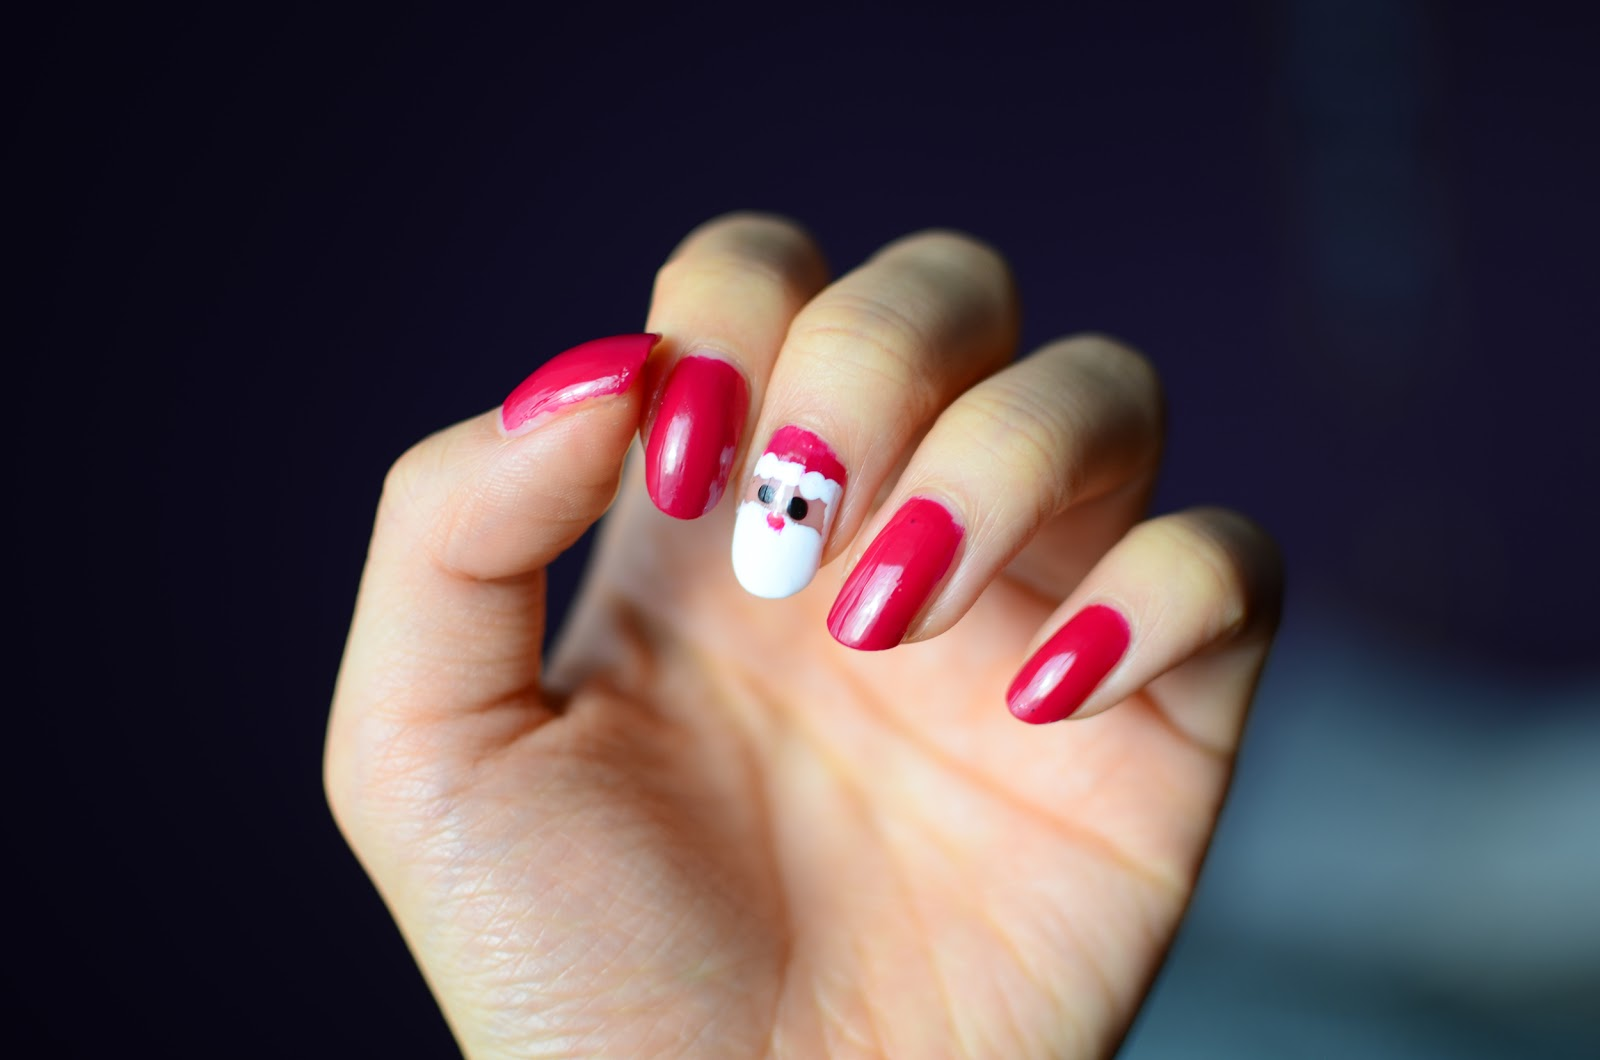 FUN SIZE BEAUTY: Santa Holiday Nail Art